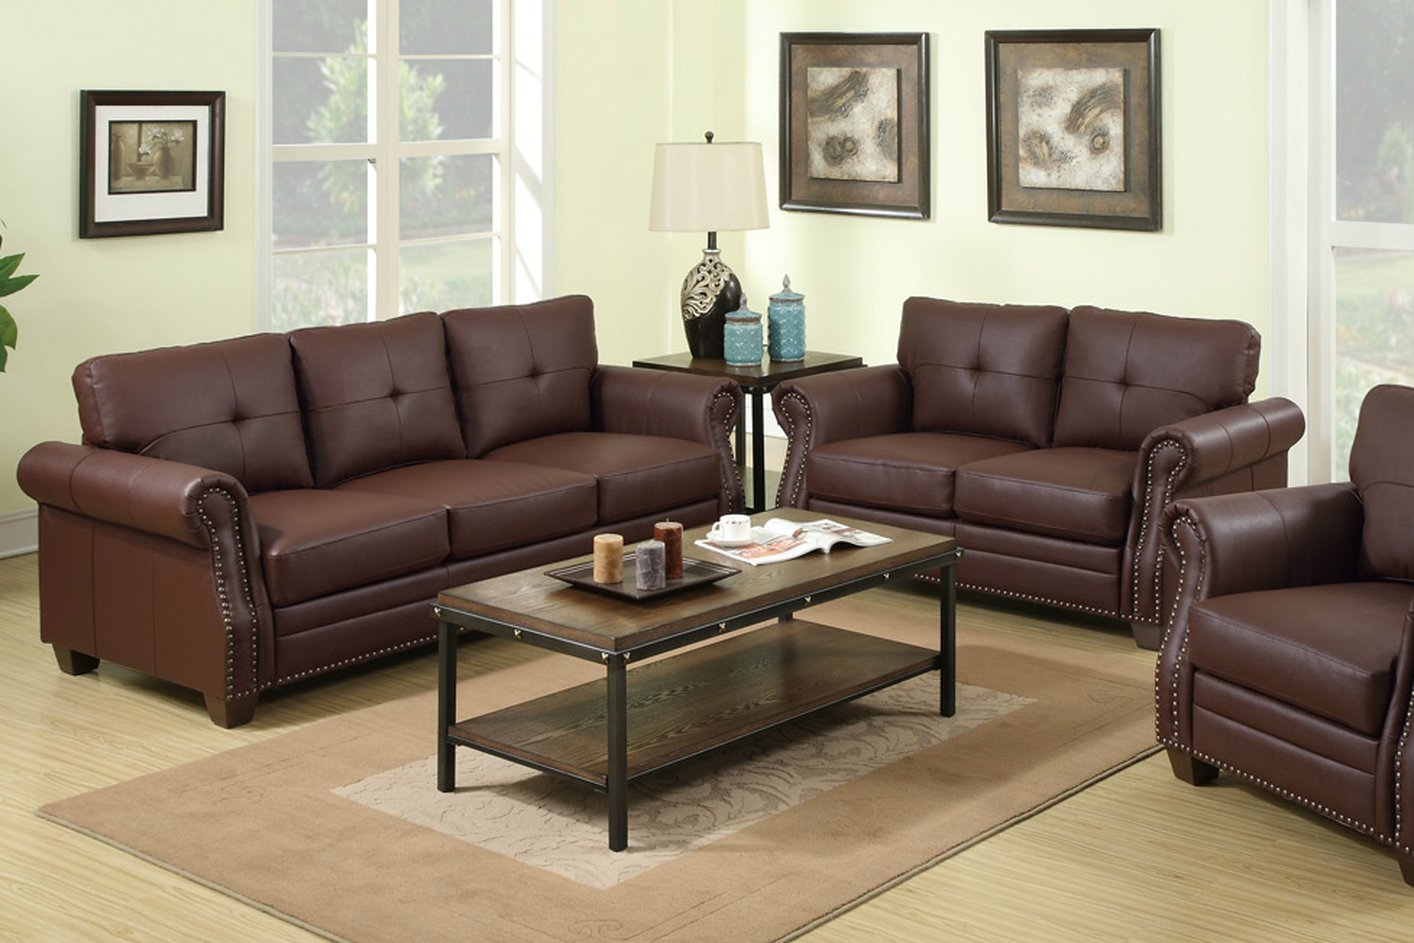 Poundex baron f7799 brown leather sofa and loveseat set for Sofa and loveseat set